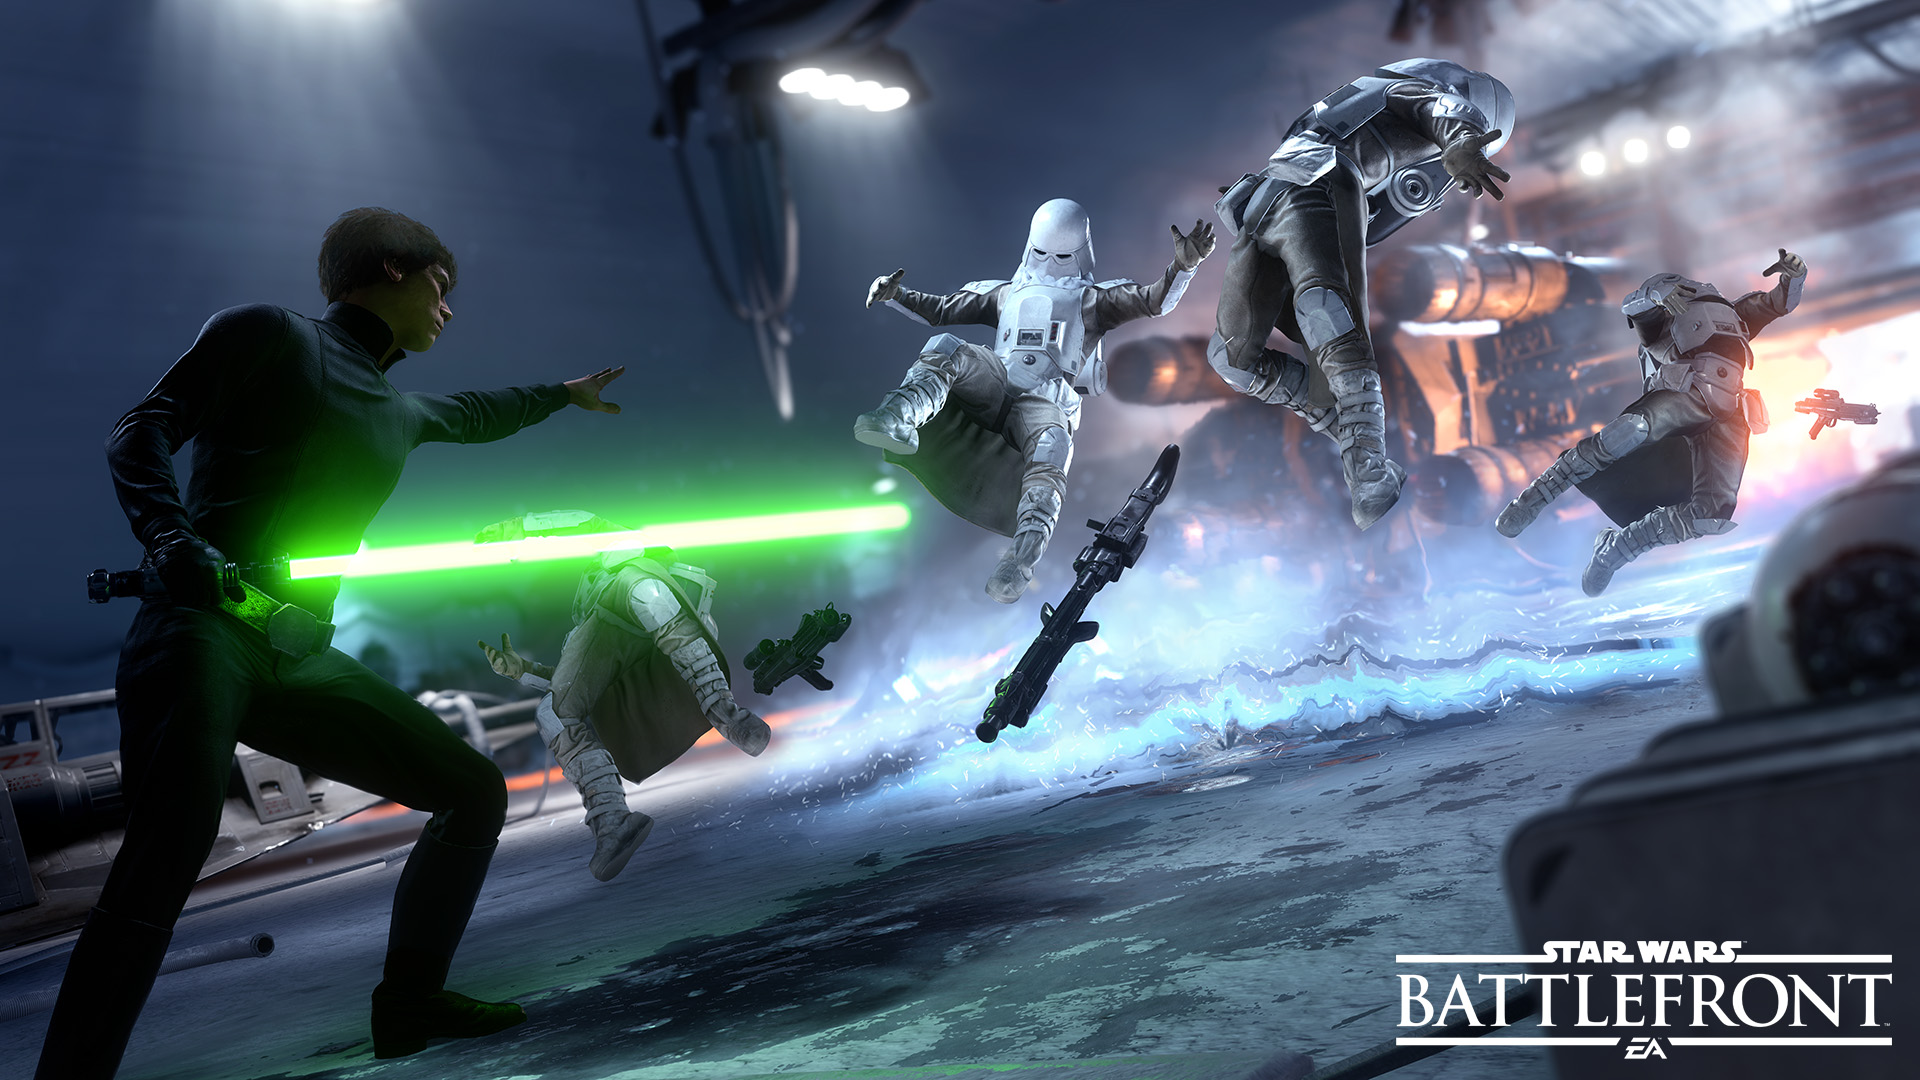 star wars battlefront new update now live on pc, full patch notes